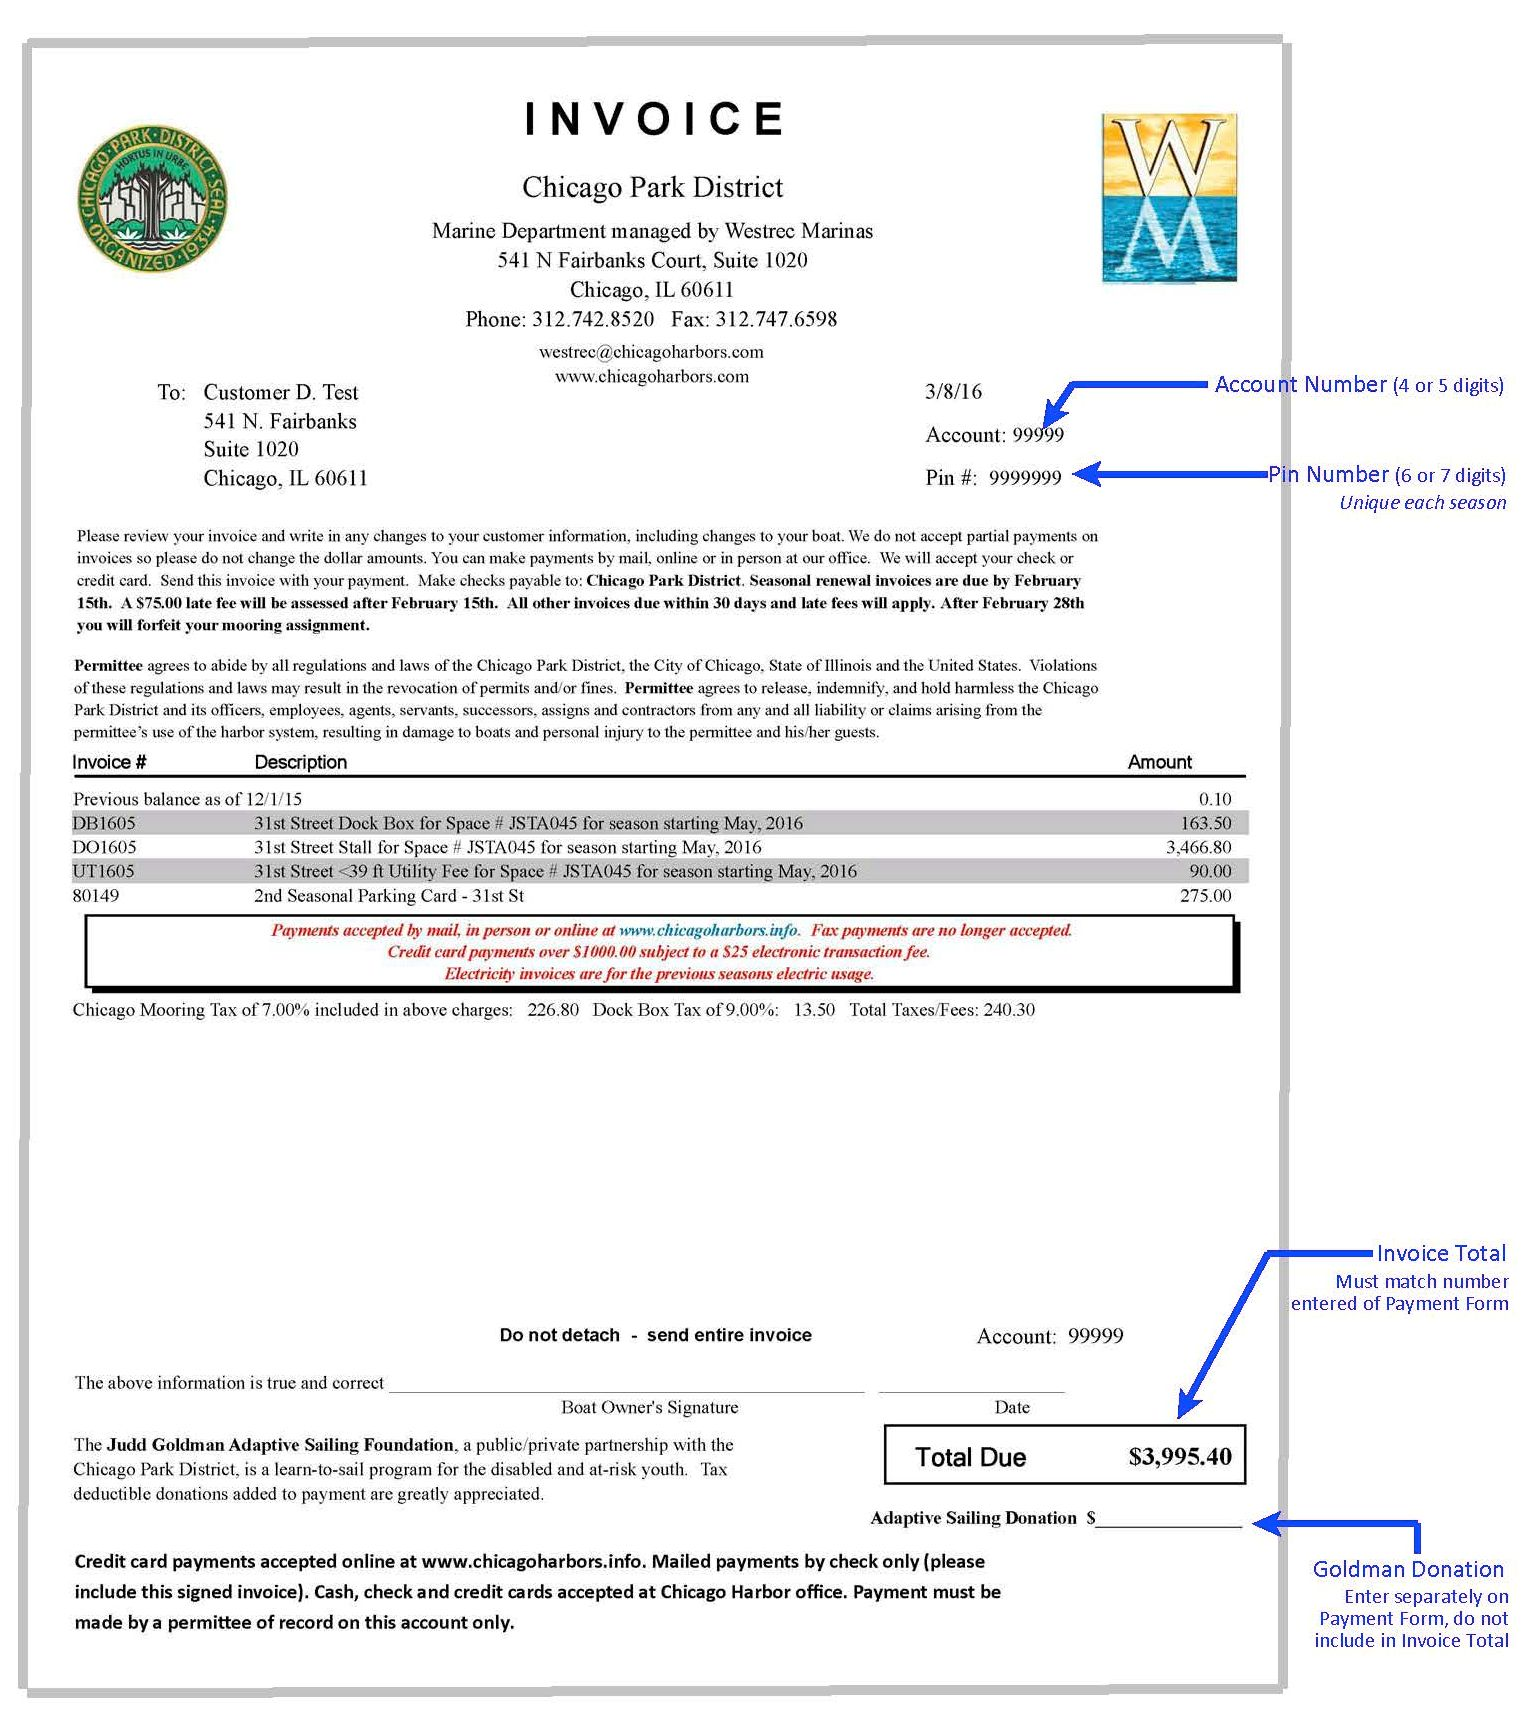 Sample Invoice 2016  Payment Slips